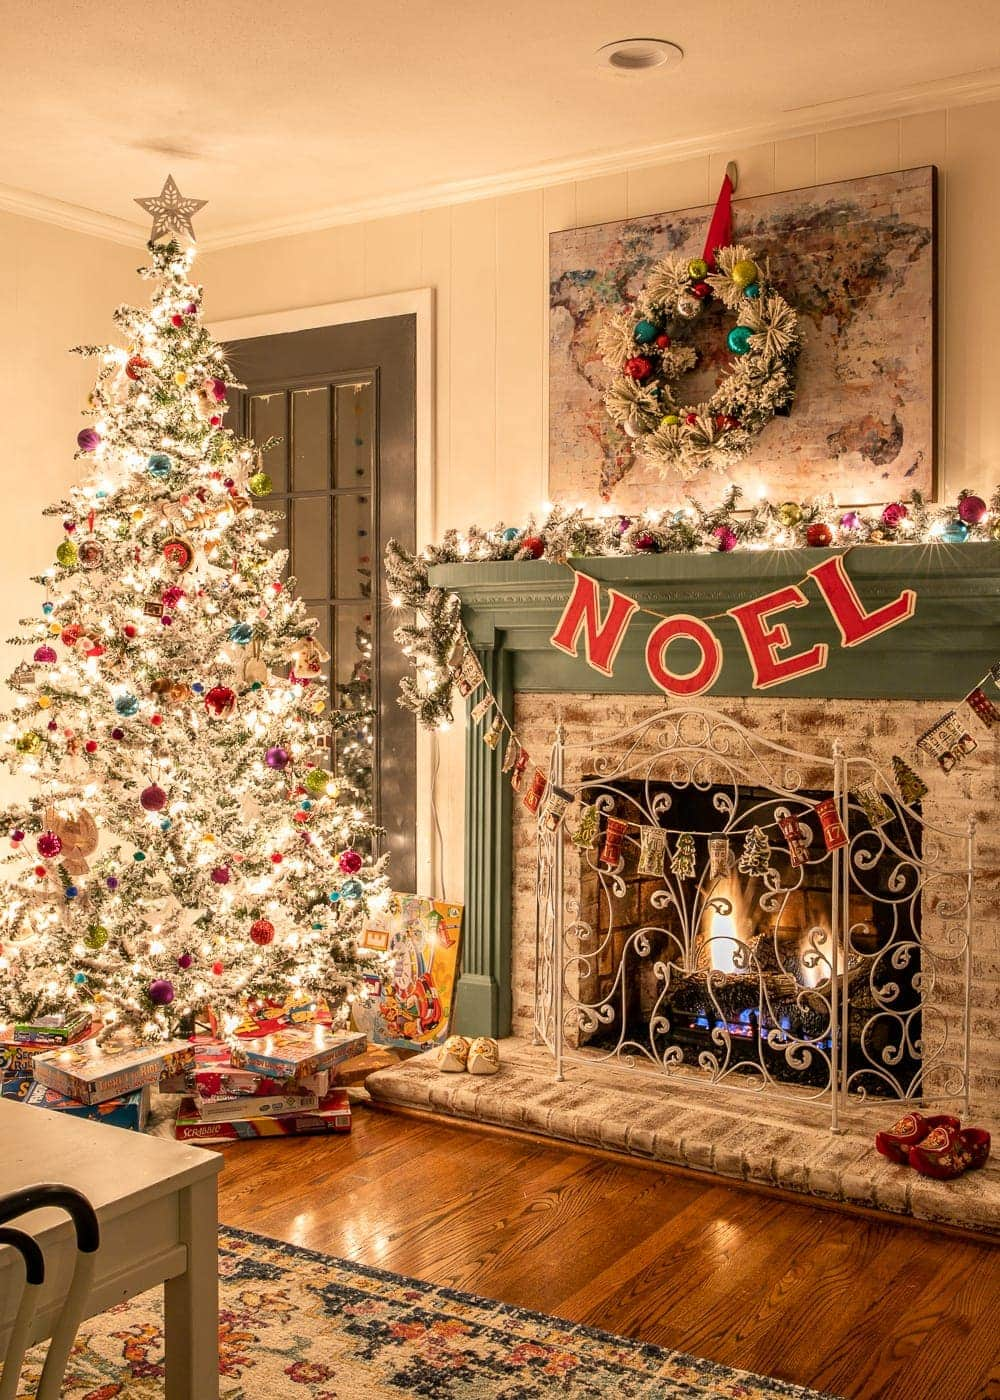 Christmas playroom at night with fireplace and tree